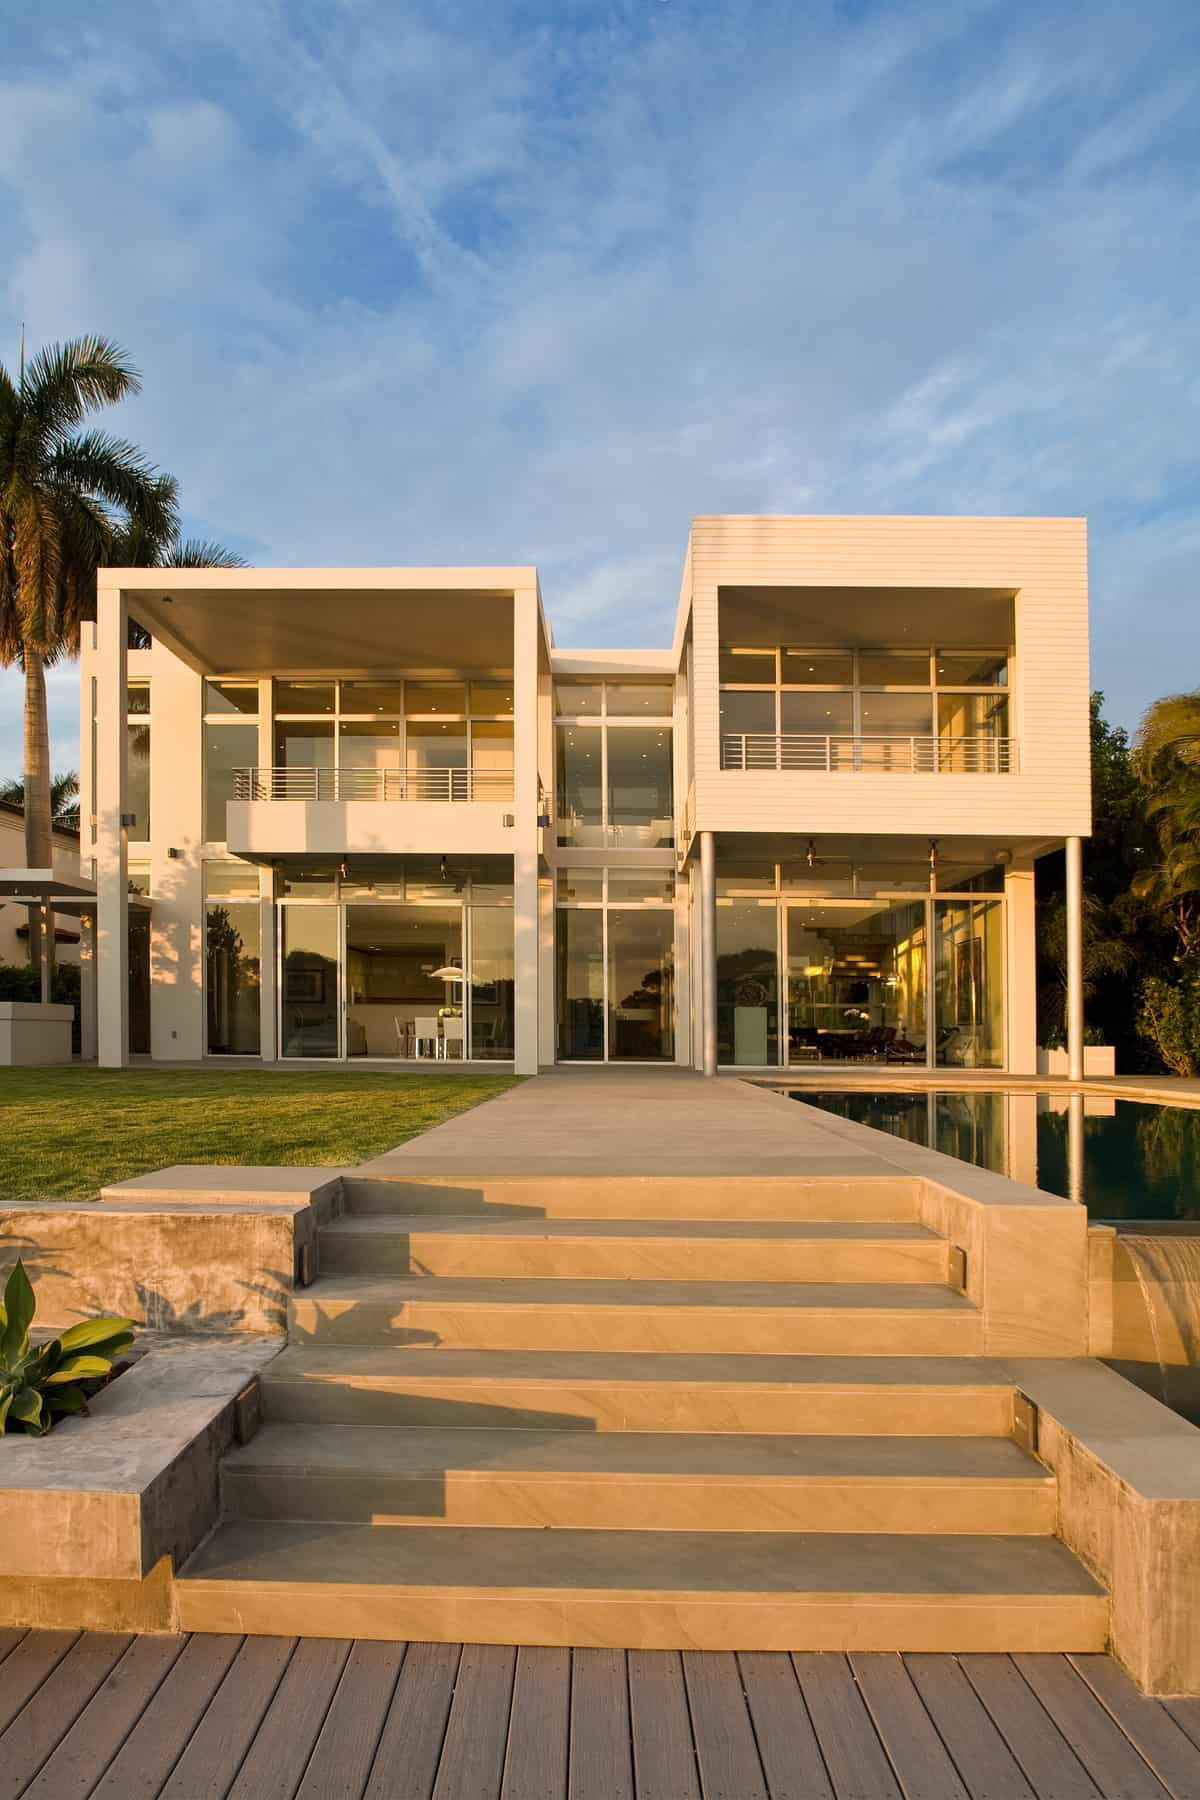 Sophisticated Coastal Home Design Filled with Luxury